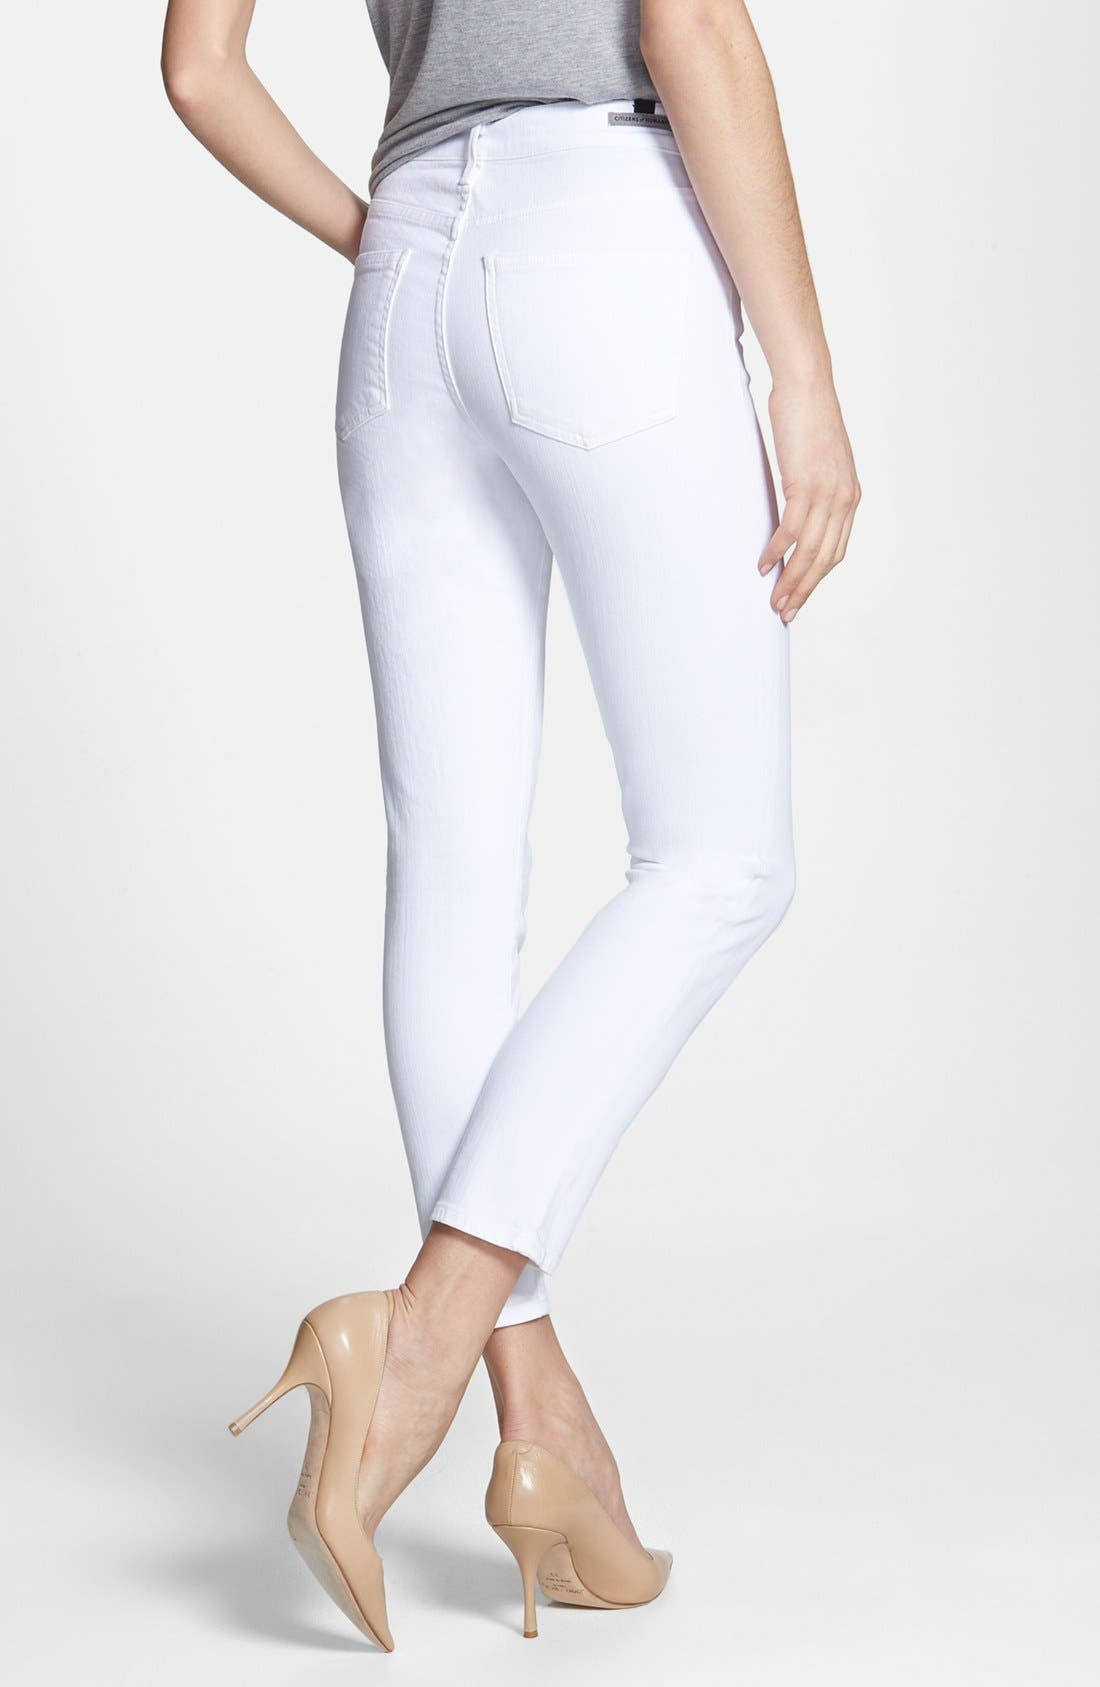 Alternate Image 2  - Citizens of Humanity 'Racer' High Rise Skinny Jeans (Santorini White)